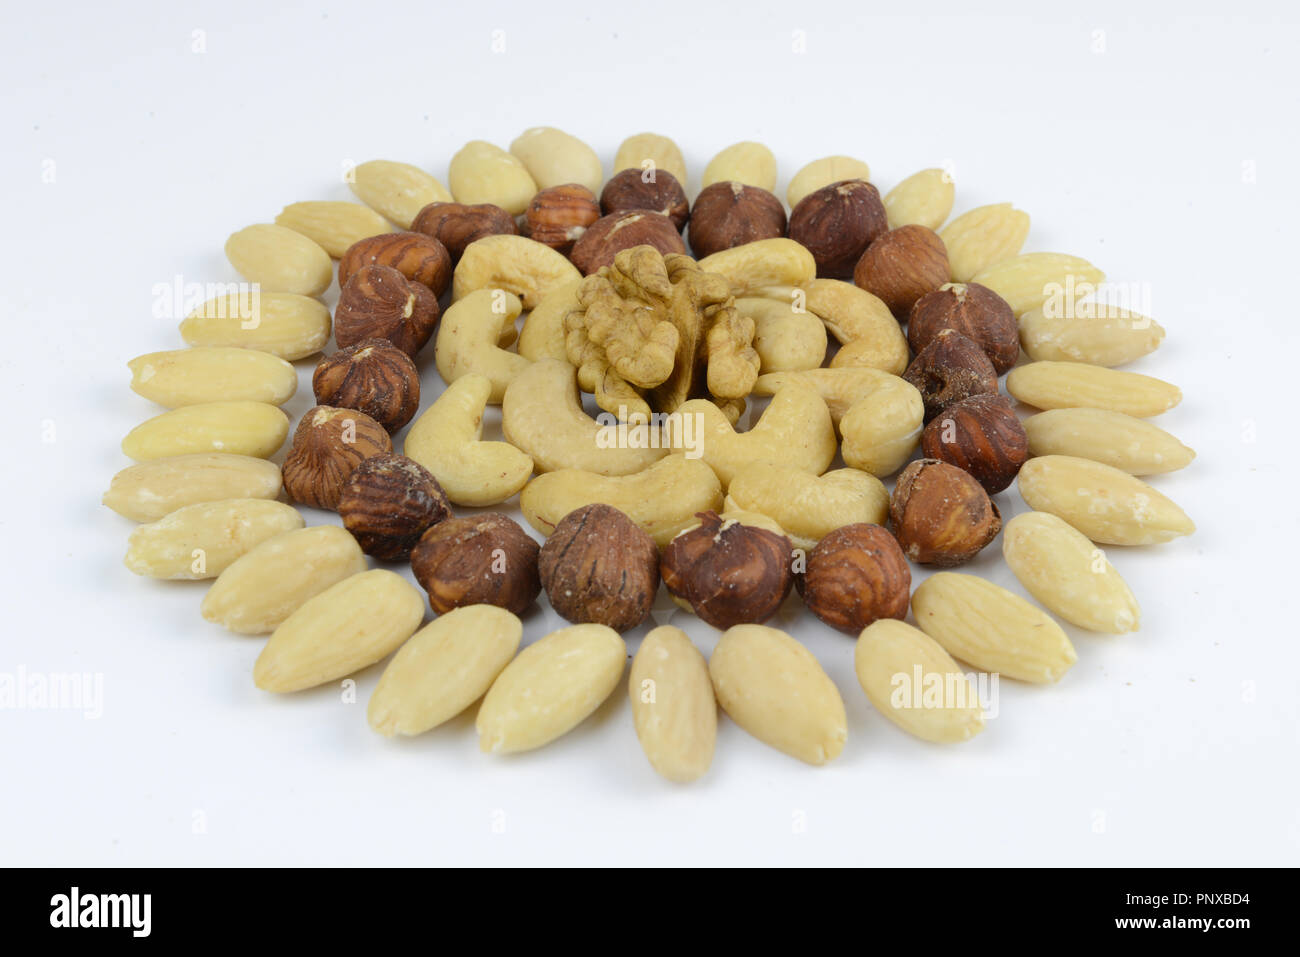 Mixed nuts ordered in flower or sun shape - Stock Image